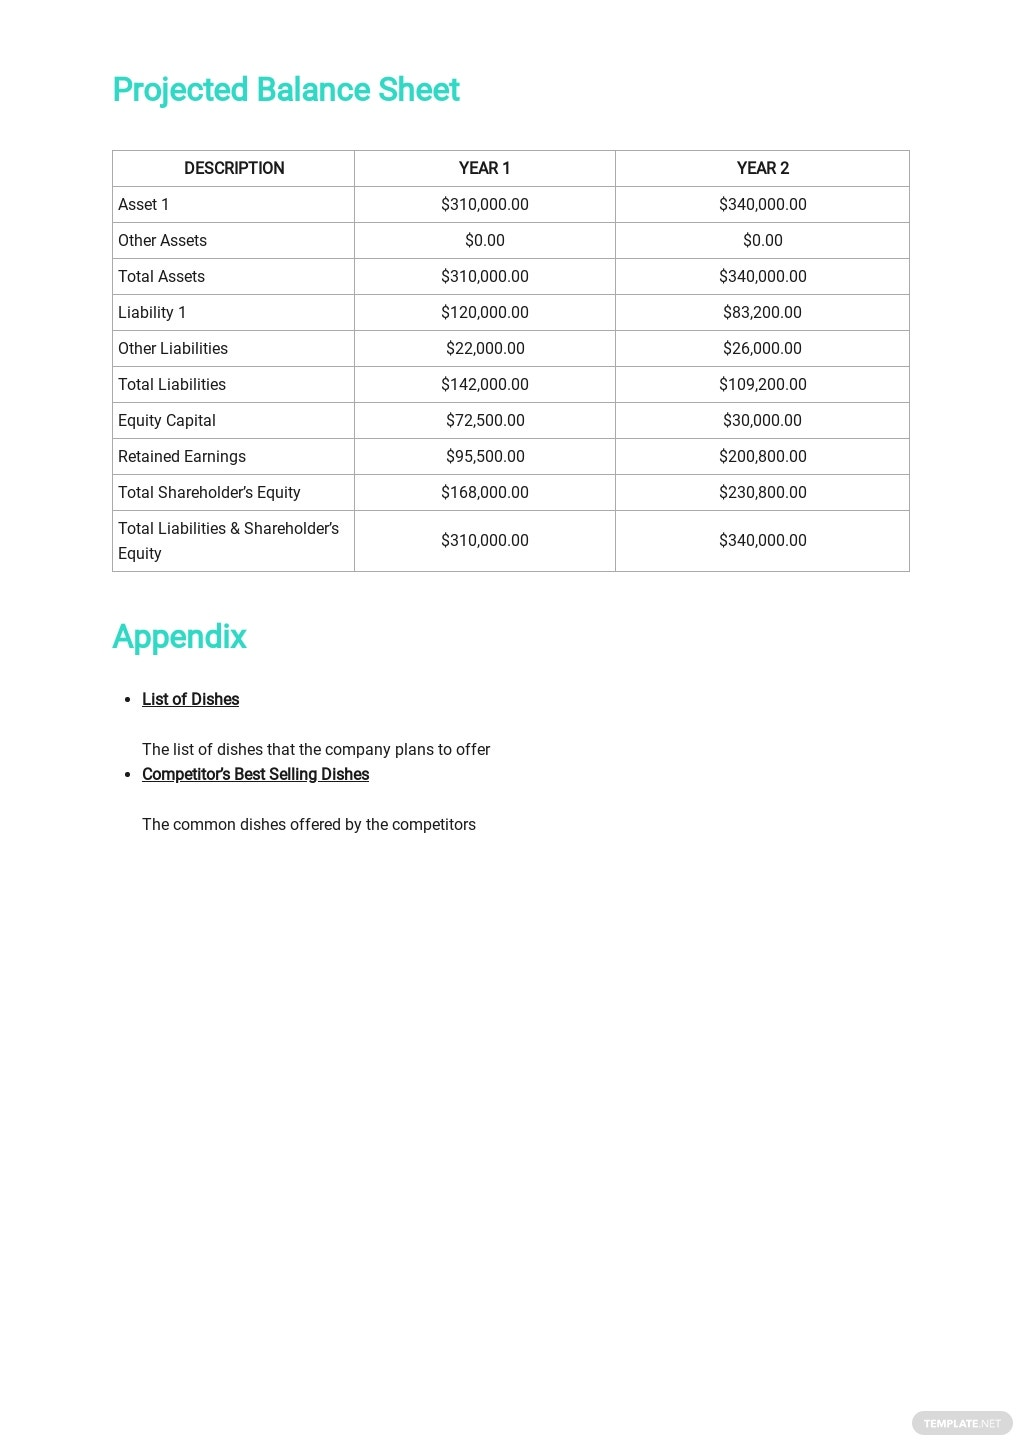 Catering Company Business Plan Template 7.jpe